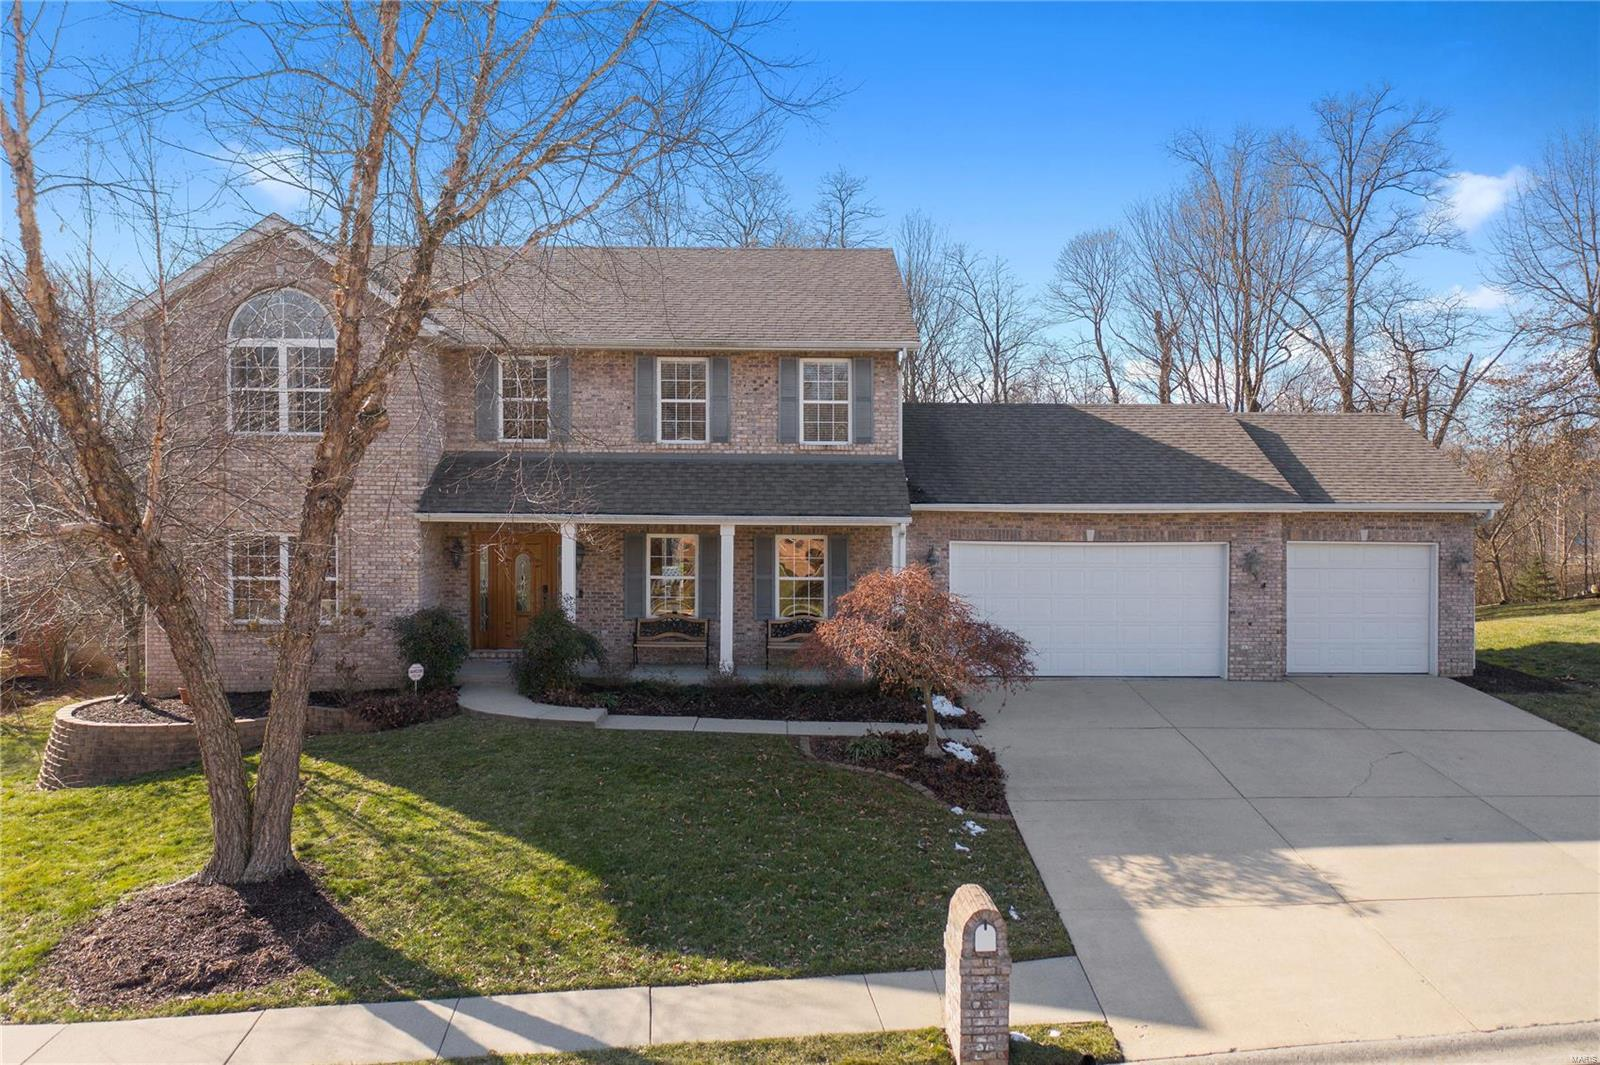 2941 Bridle Lane Property Photo - Swansea, IL real estate listing